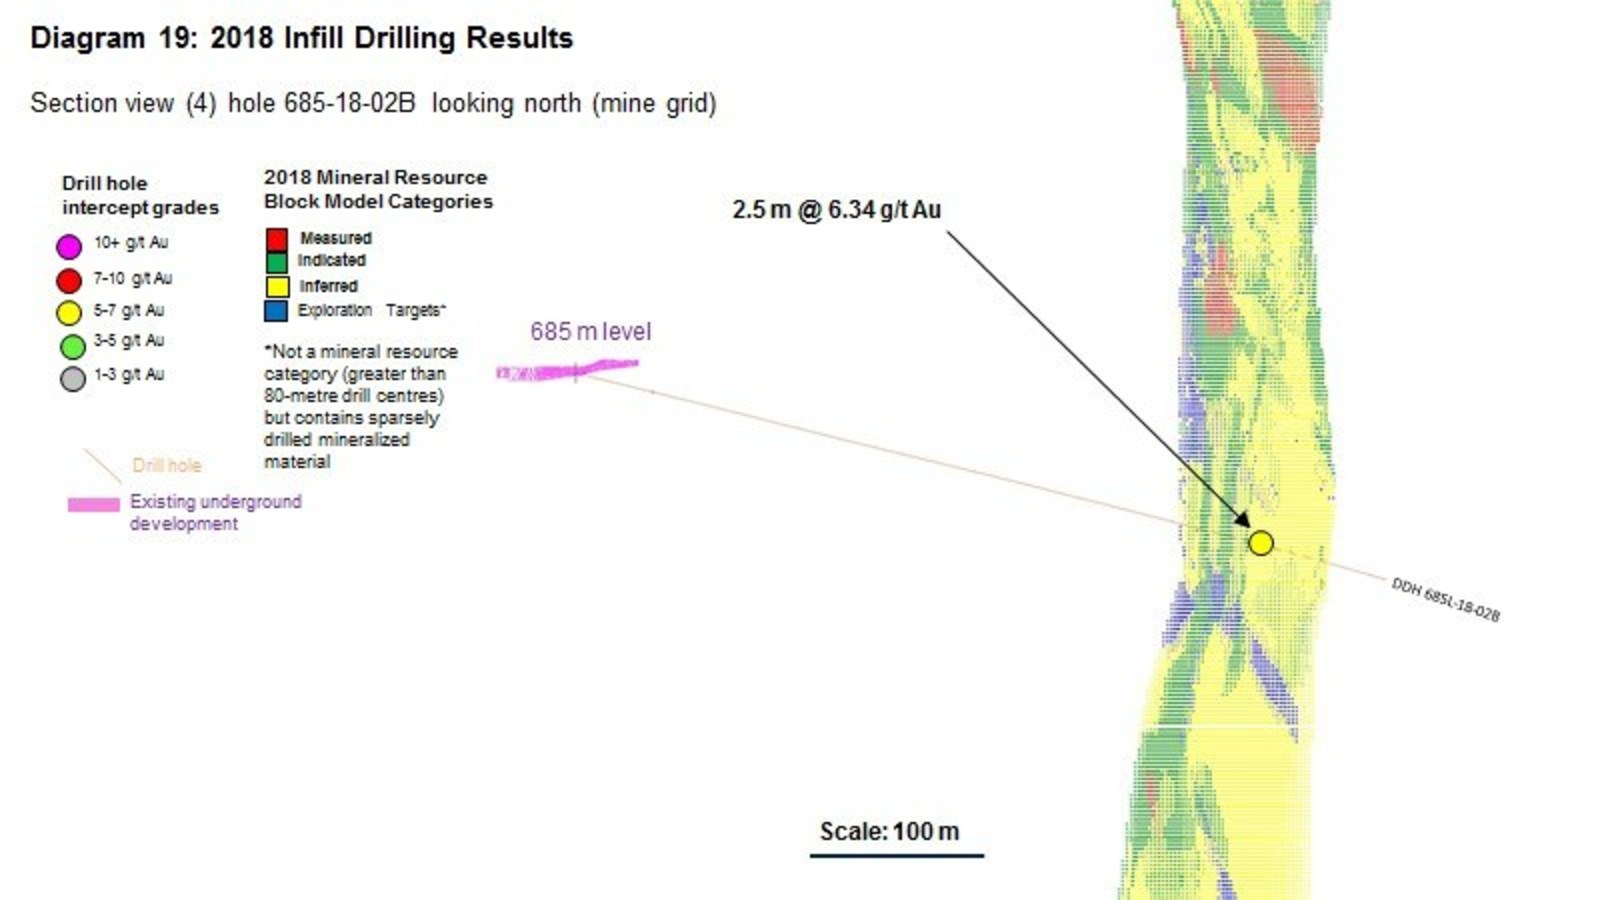 Diagram 19 : 2018 Infill Drilling Results